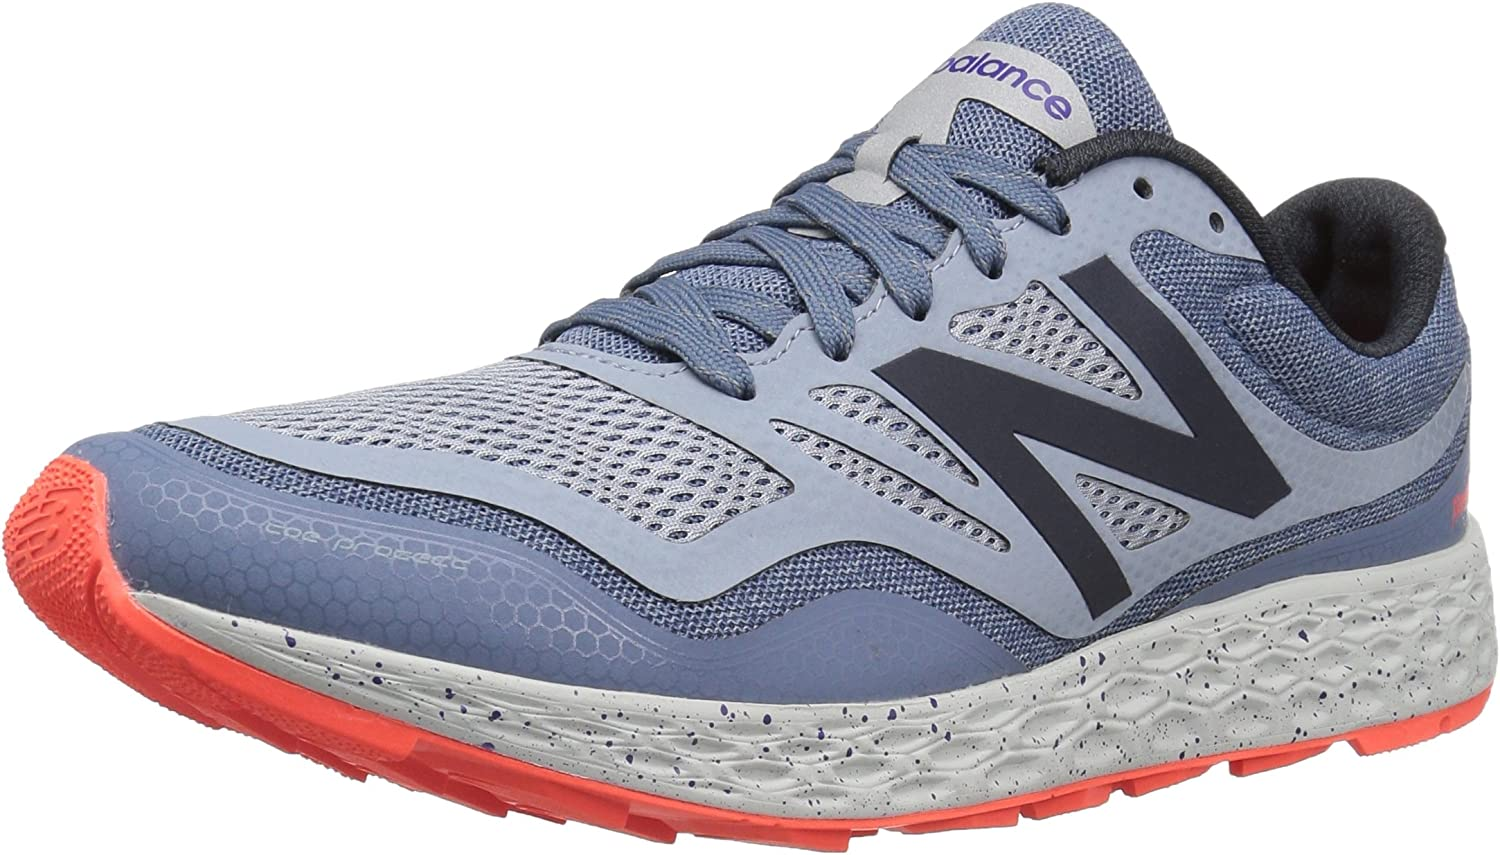 New Balance Men's Fresh Foam Gobi Running shoes